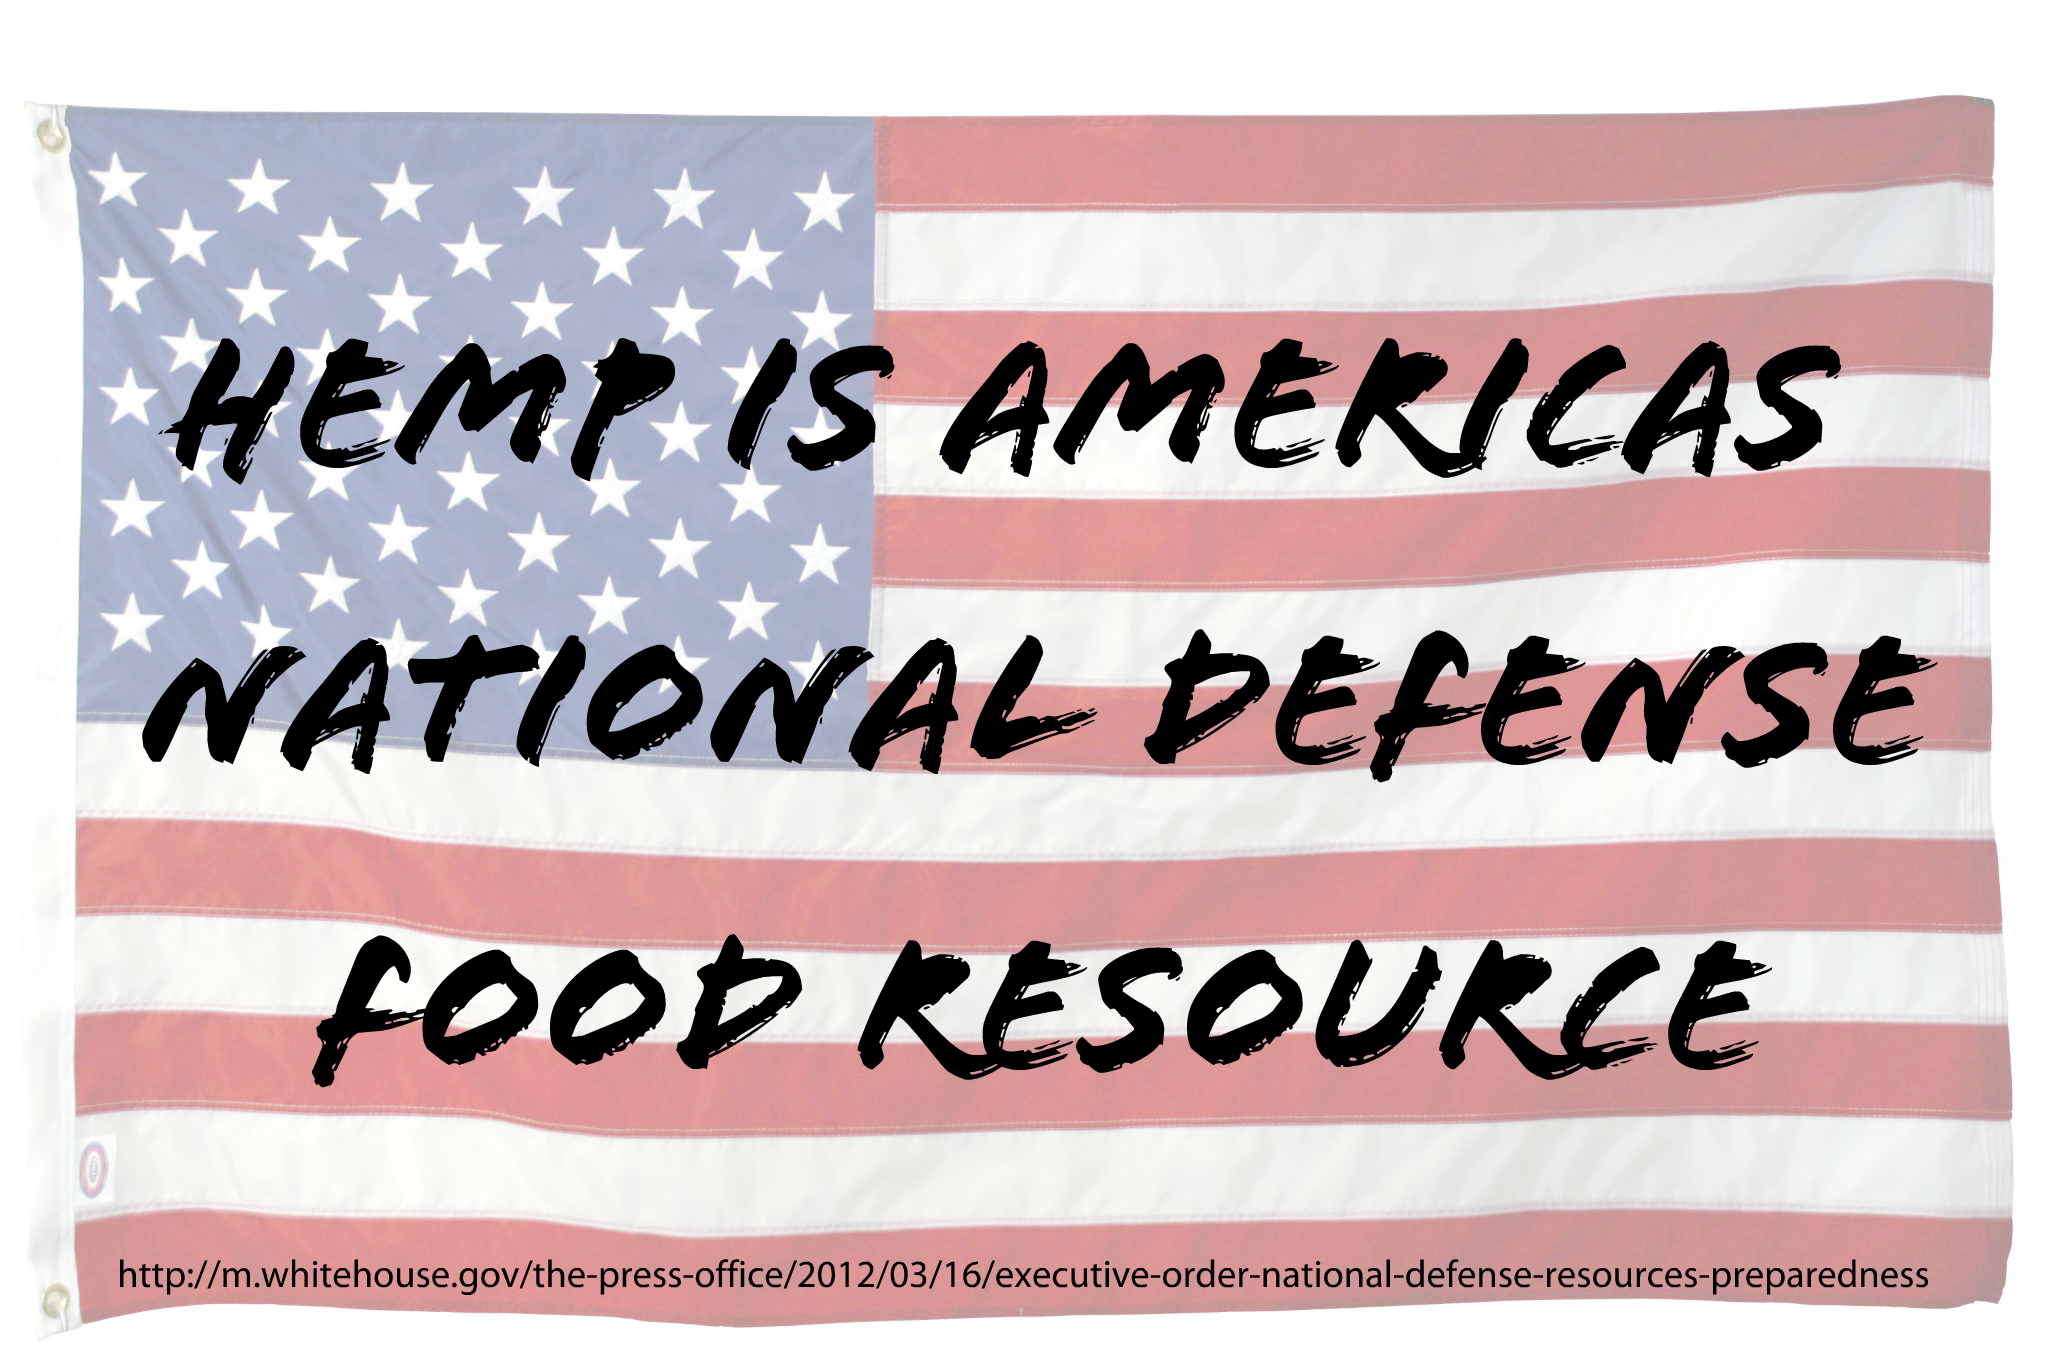 Hemp is Americas National Defense Food Resource